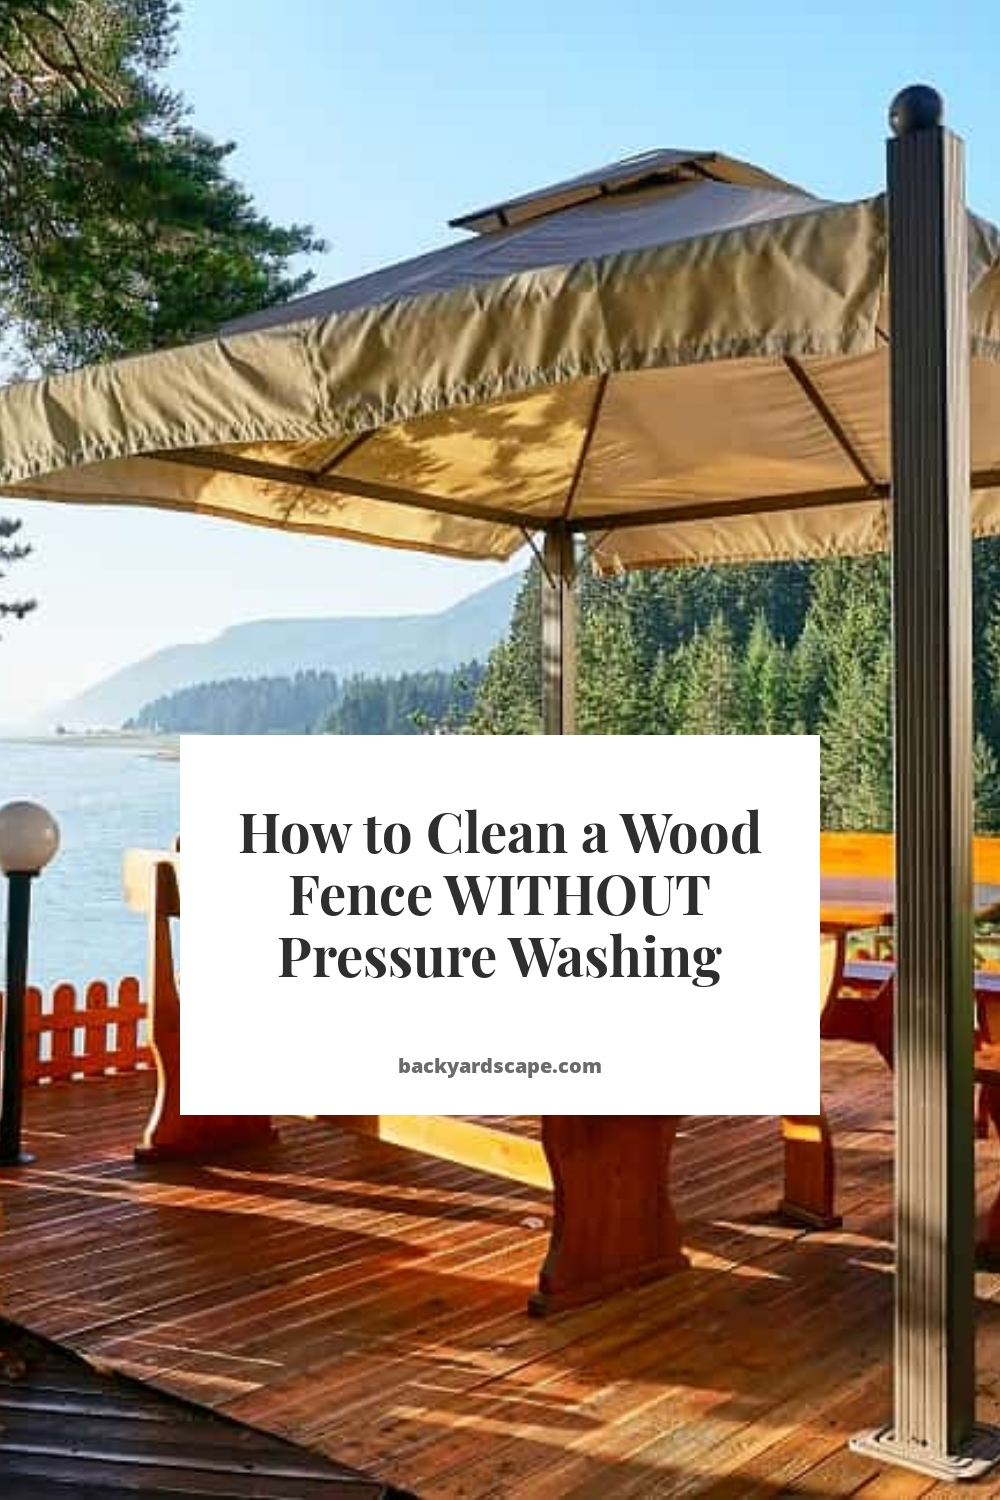 How to Clean a Wood Fence WITHOUT Pressure Washing